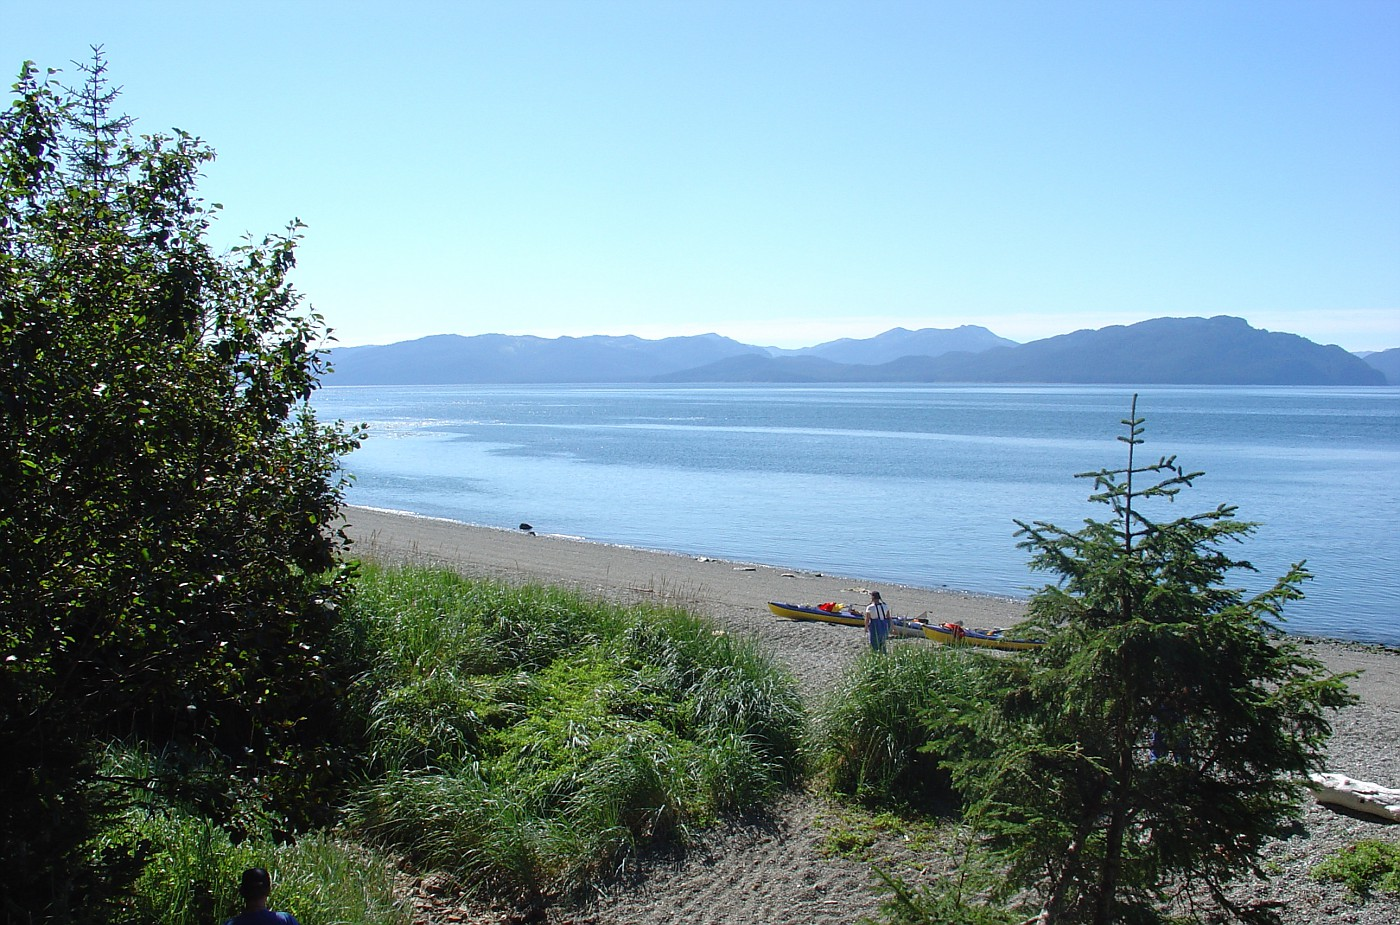 Icy Strait kayakers take a break